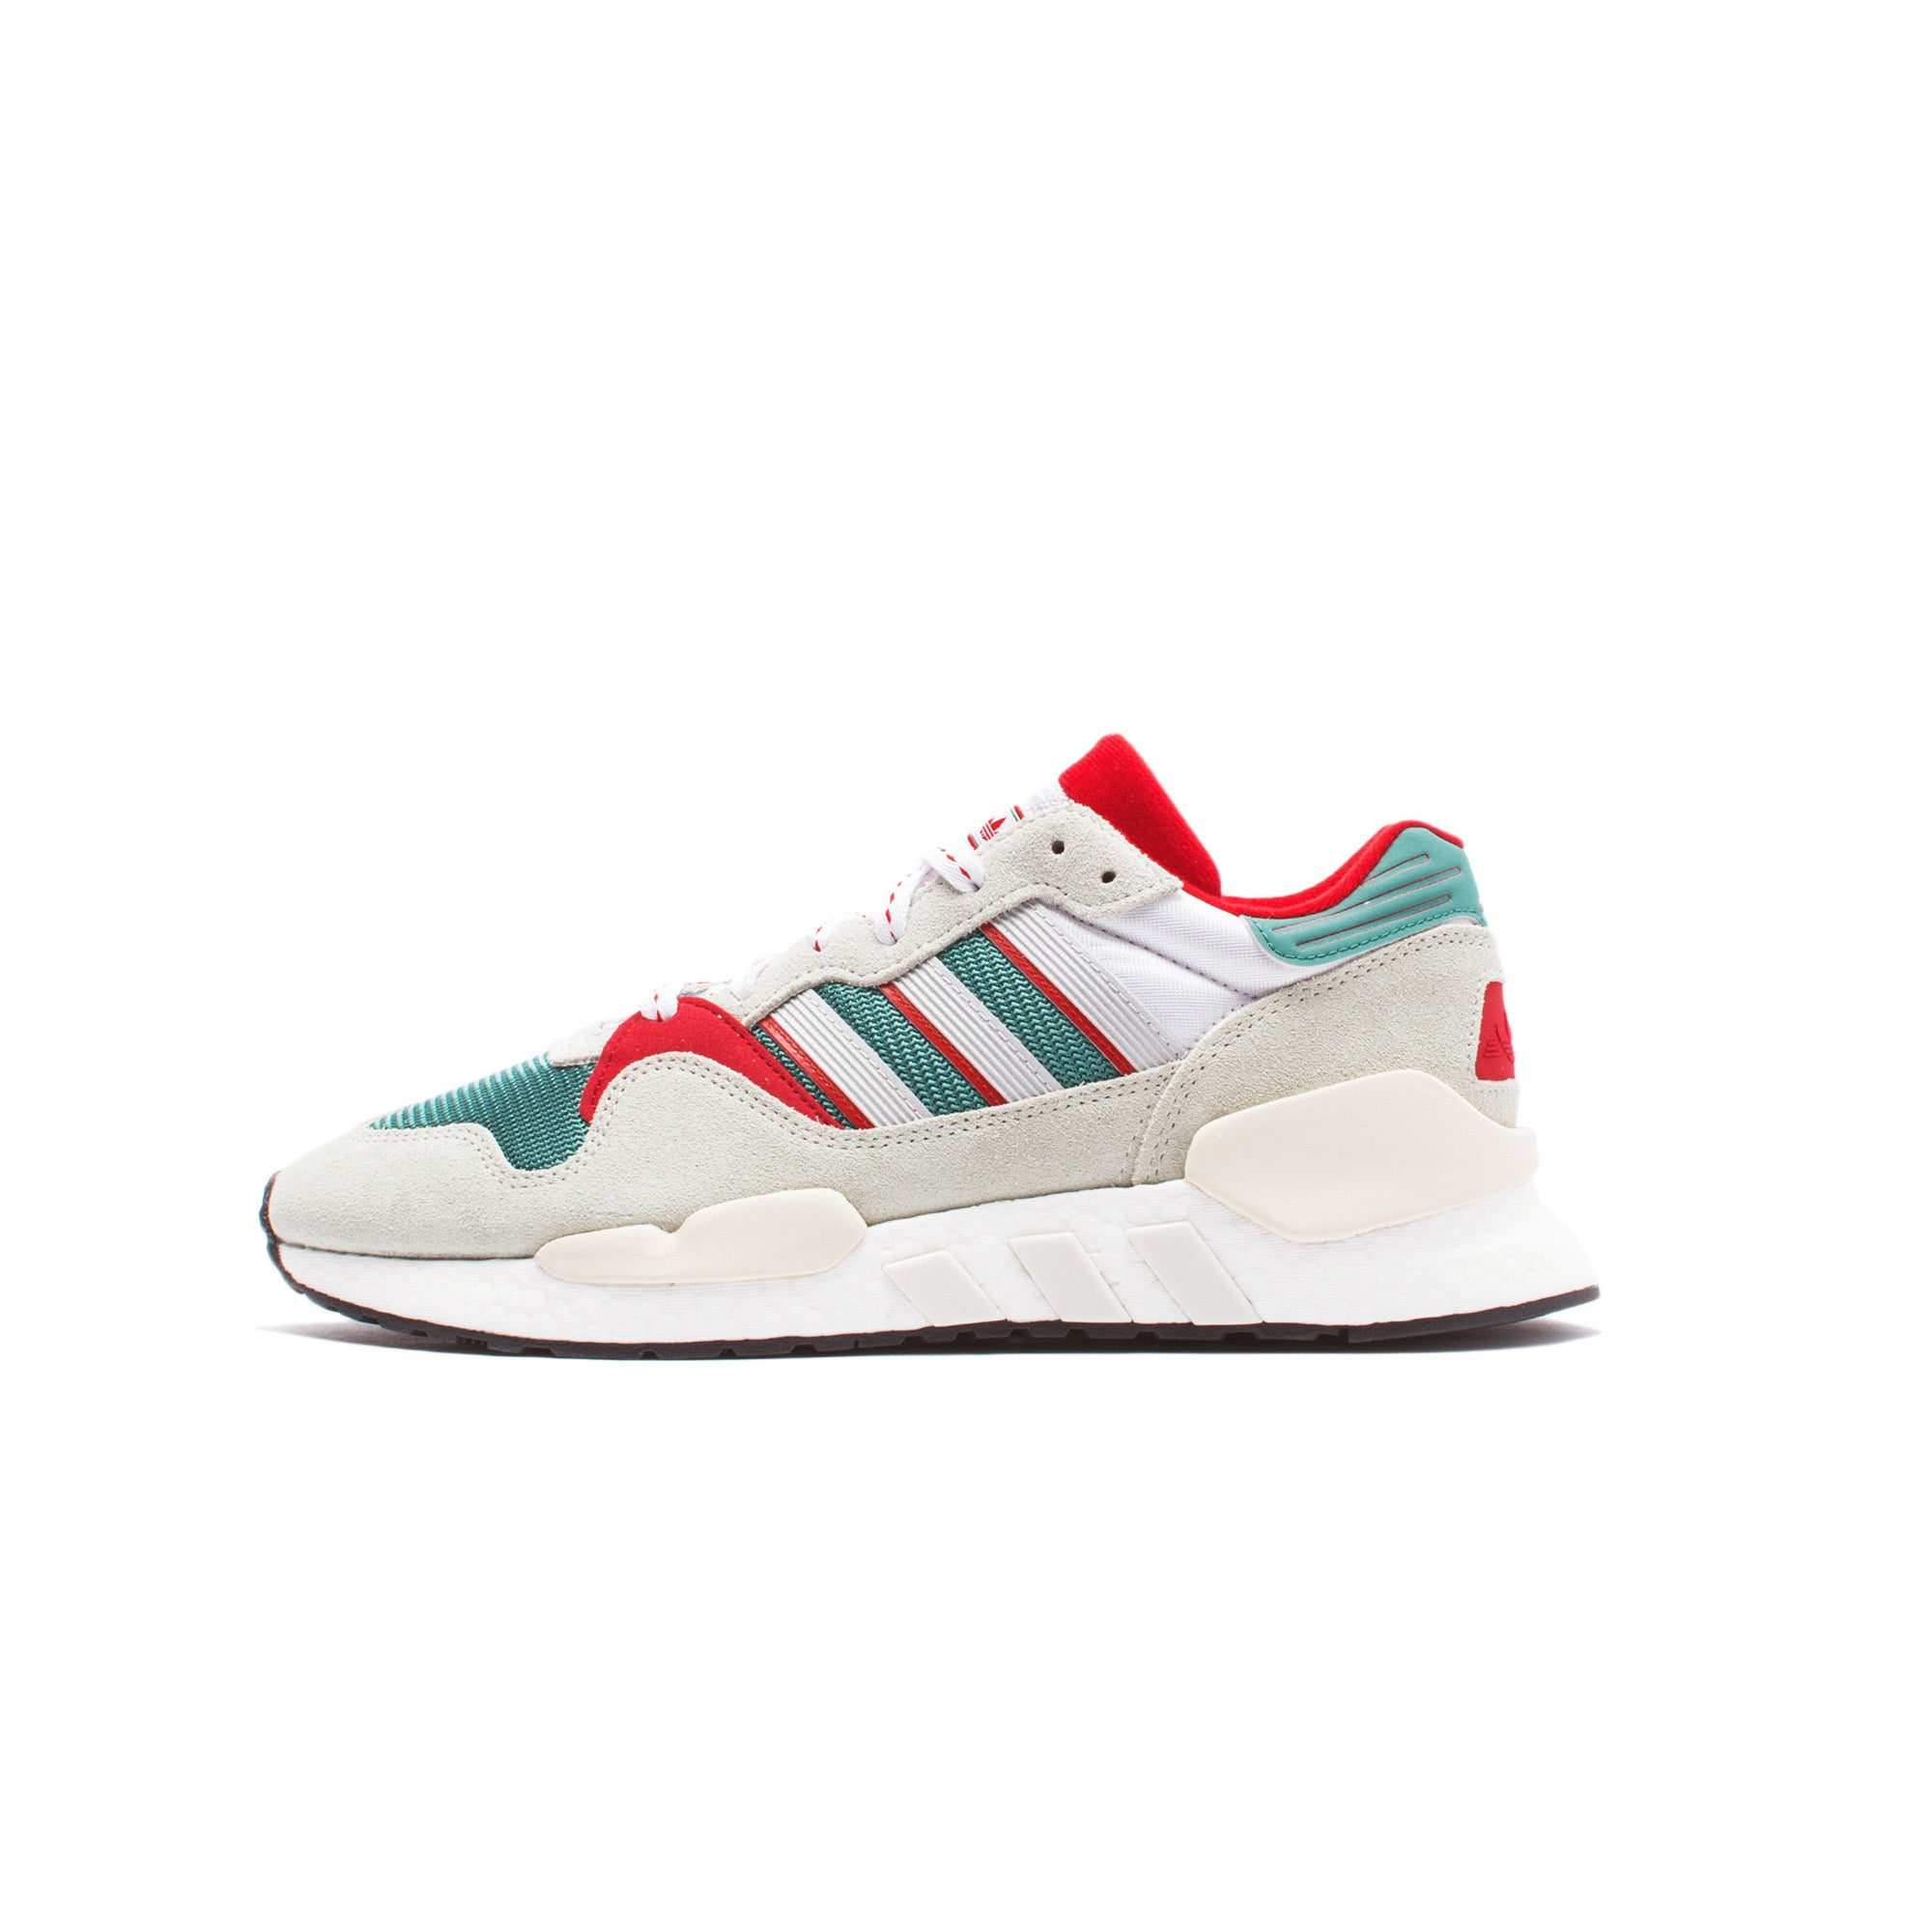 new style 99964 d2aba Adidas Never Made ZX930xEQT [G26806]